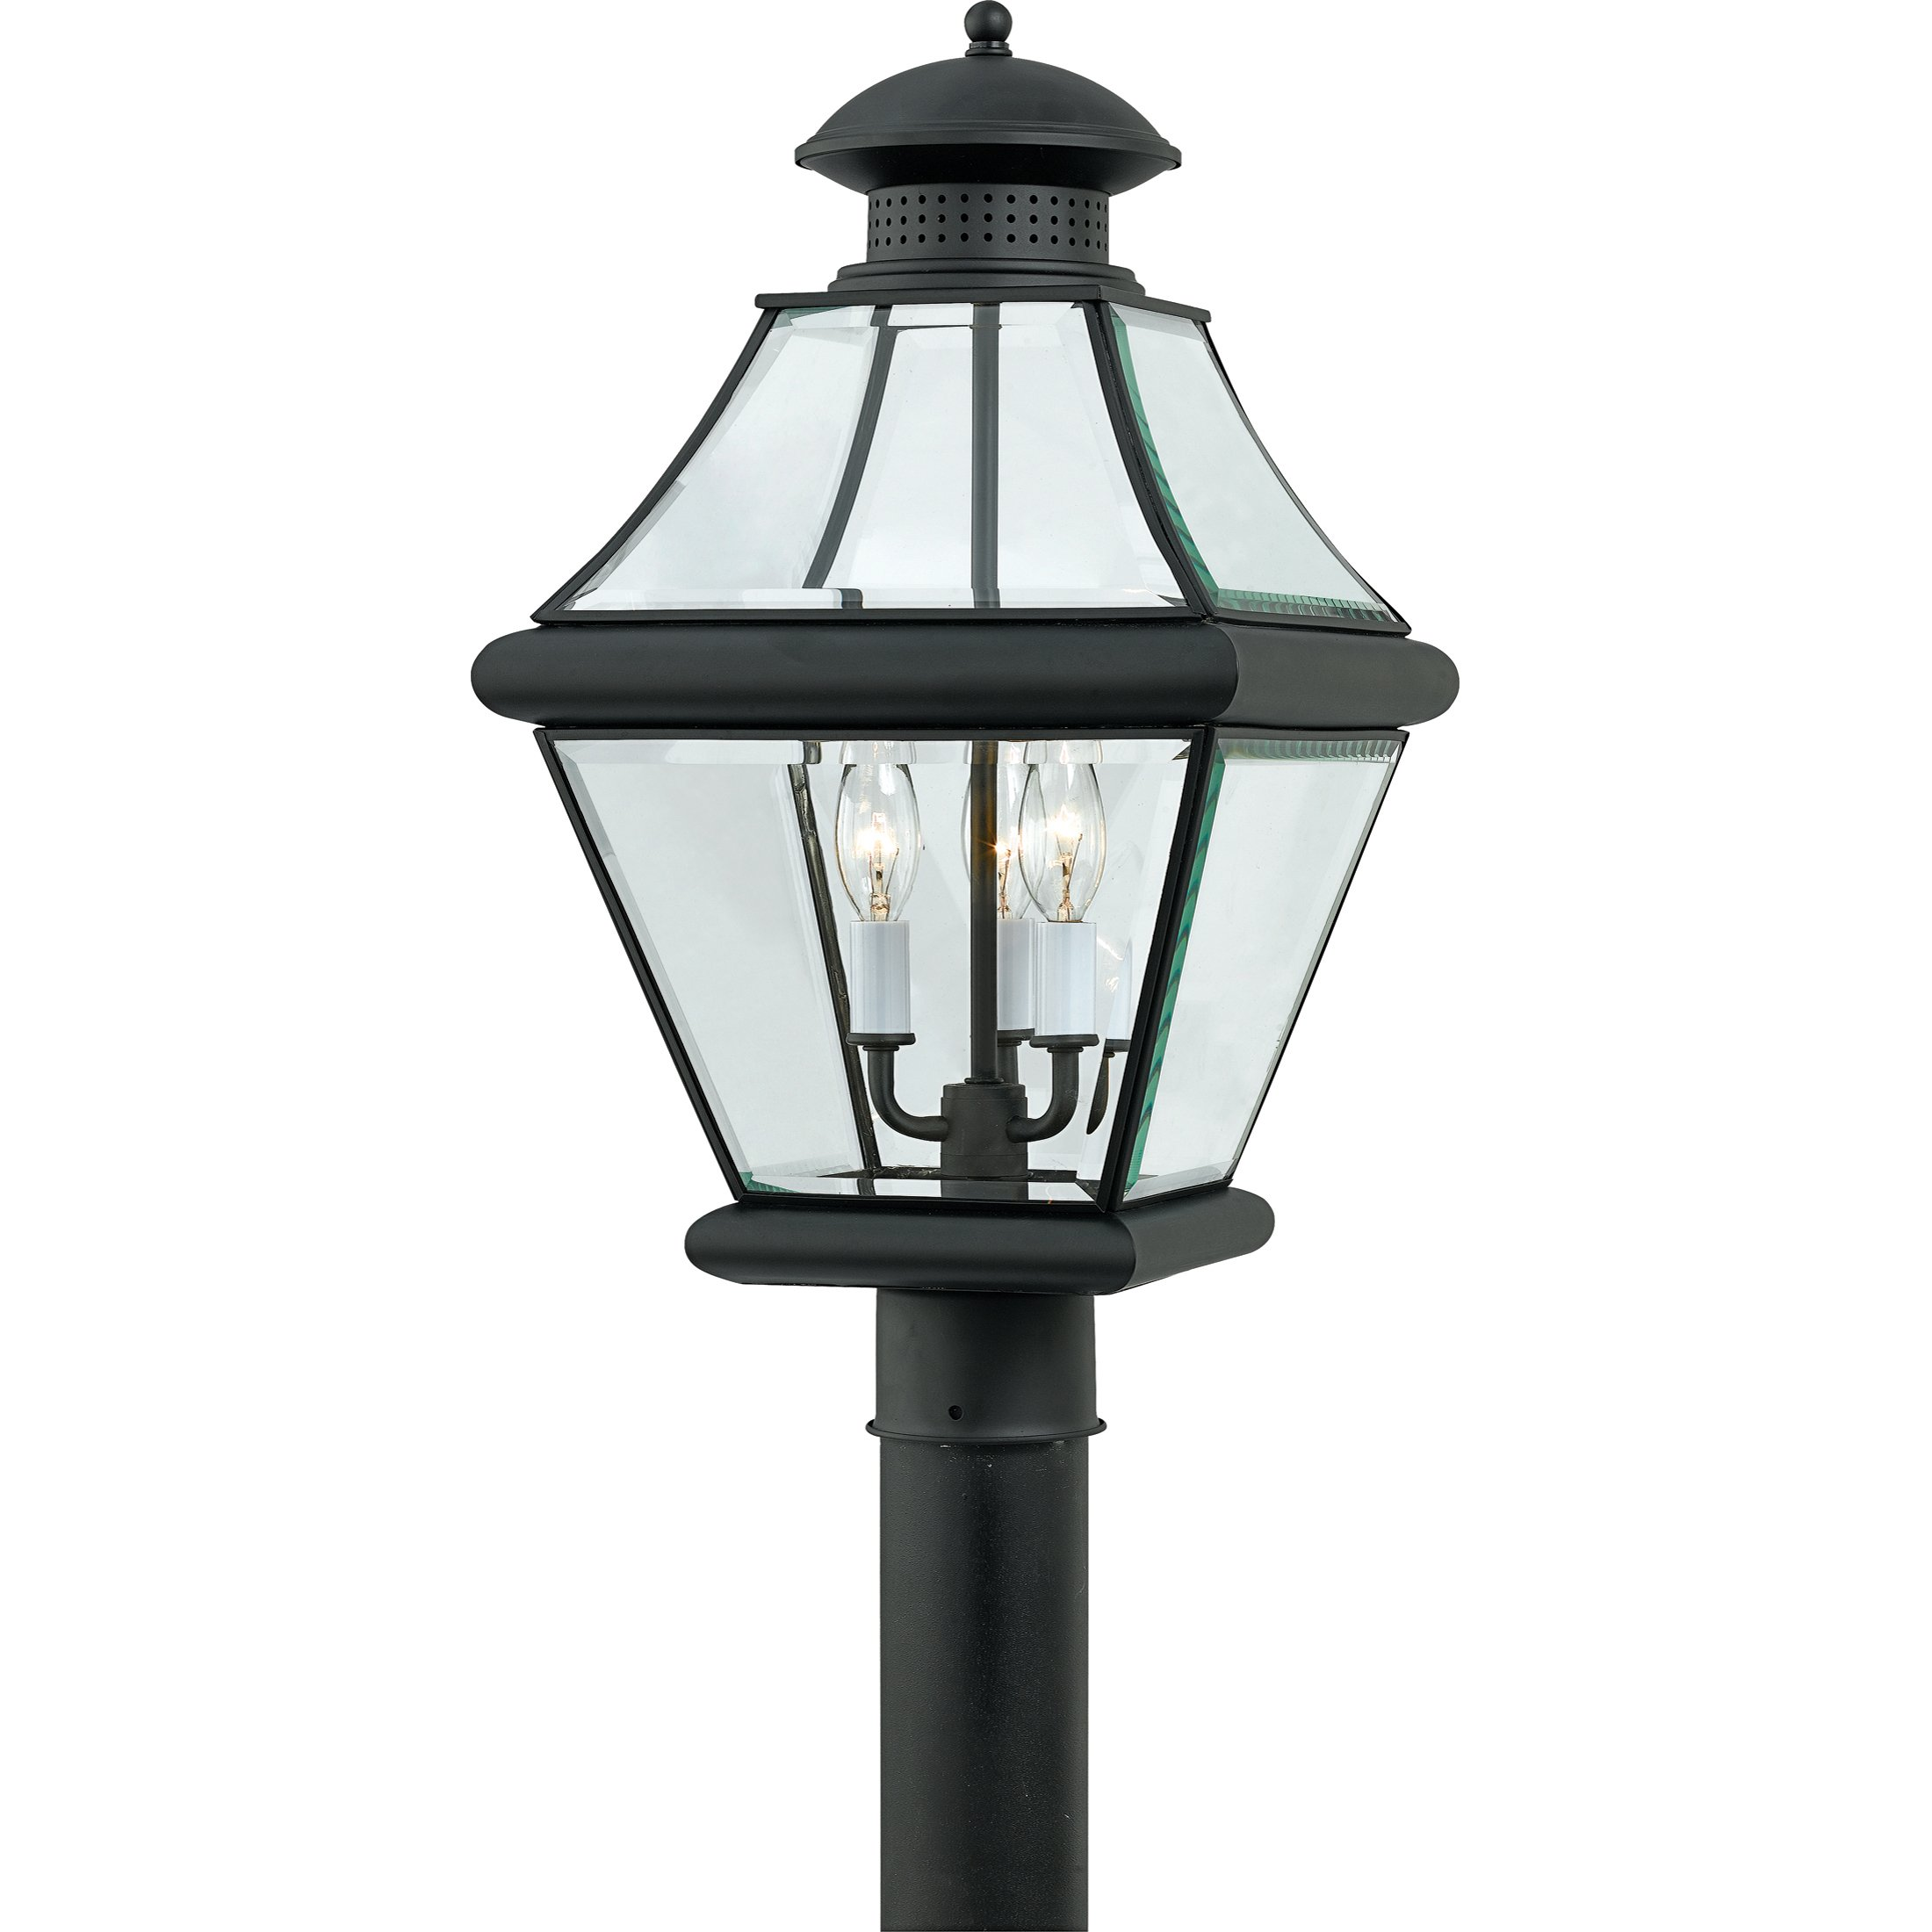 Quoizel RJ9011K Rutledge 3-Light Outdoor Wall Post Lantern, Mystic Black by Quoizel